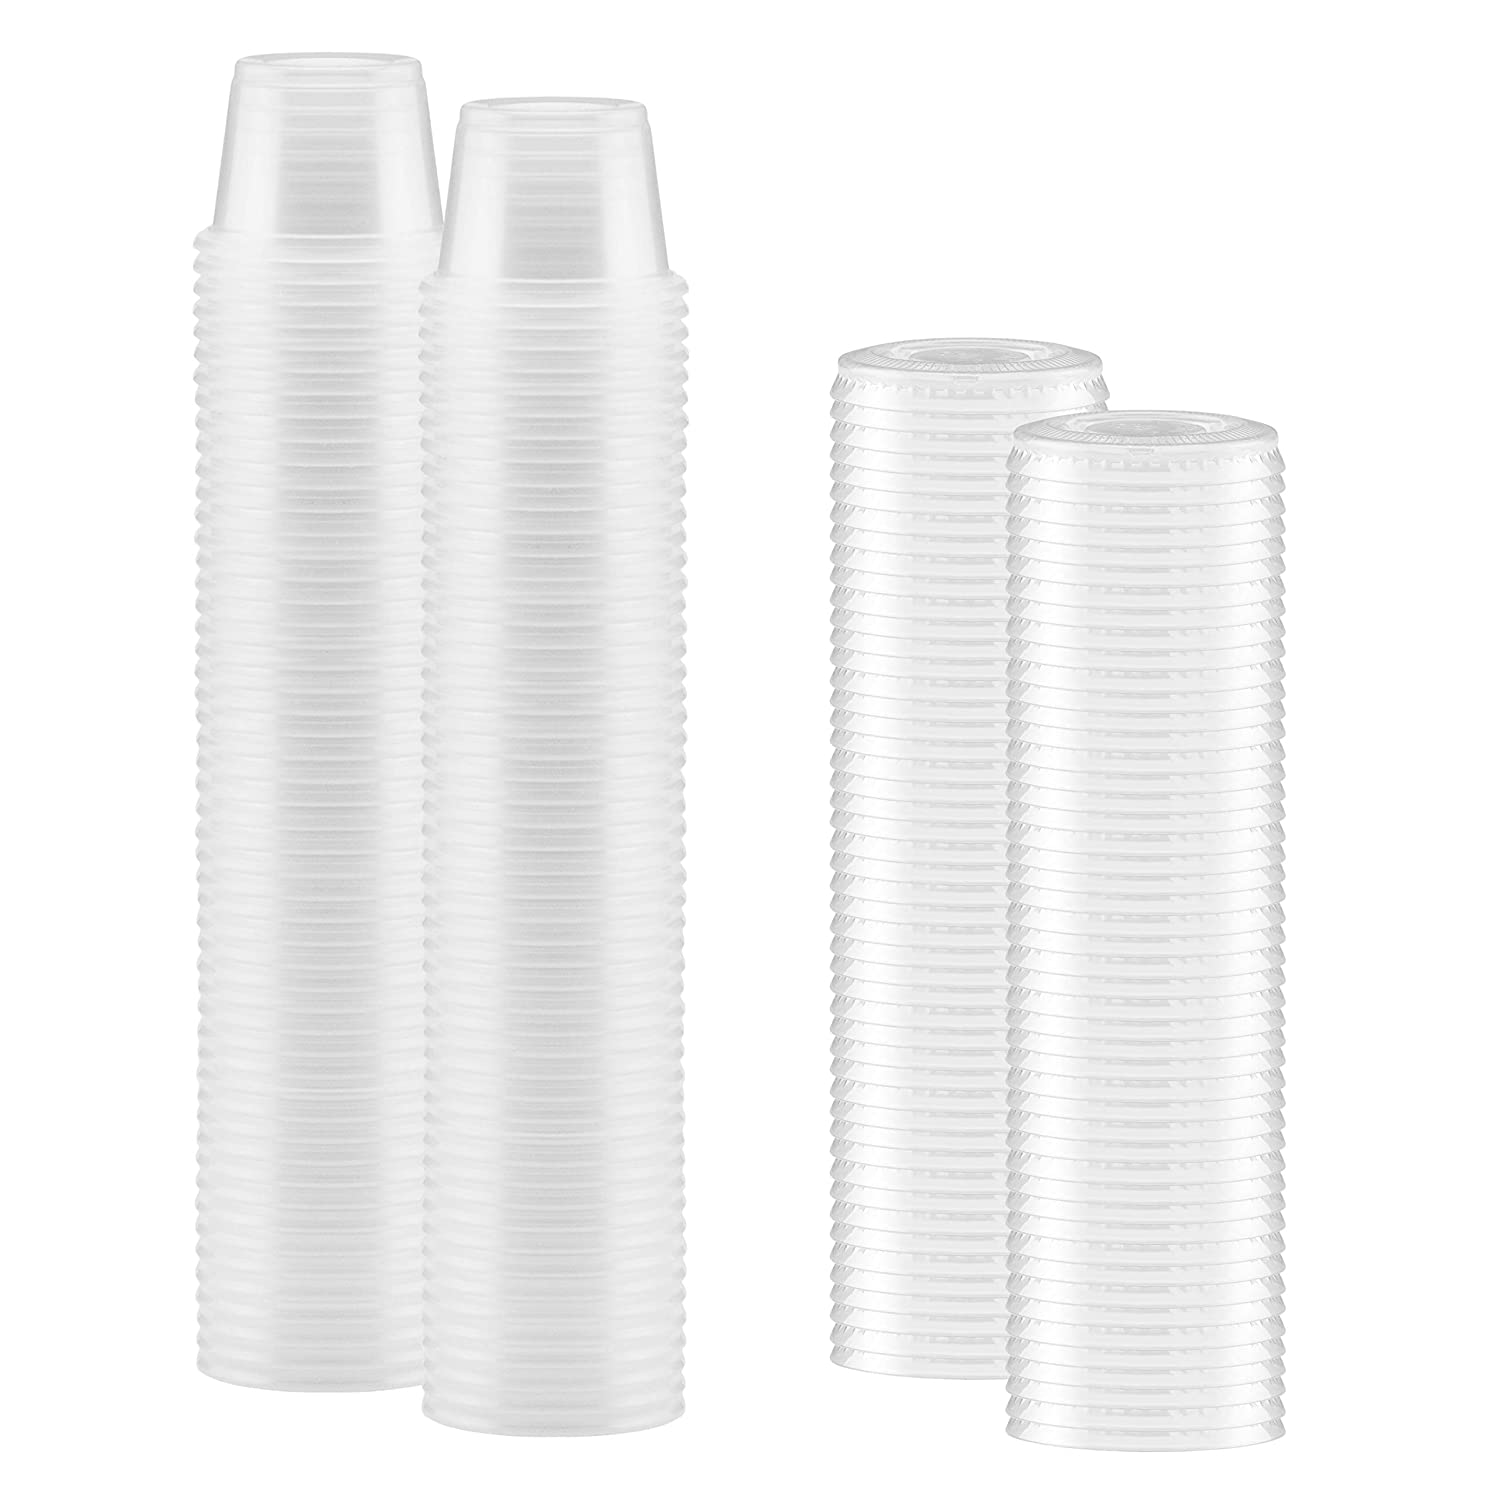 100-Pack of 1-oz Clear Plastic Jello Shot Cups Container with Snap on Leak-Proof Lids –Small Shot Cups – Compact Food Storage Containers for Portion Control, Sauces, Spices, Liquid, Dips,